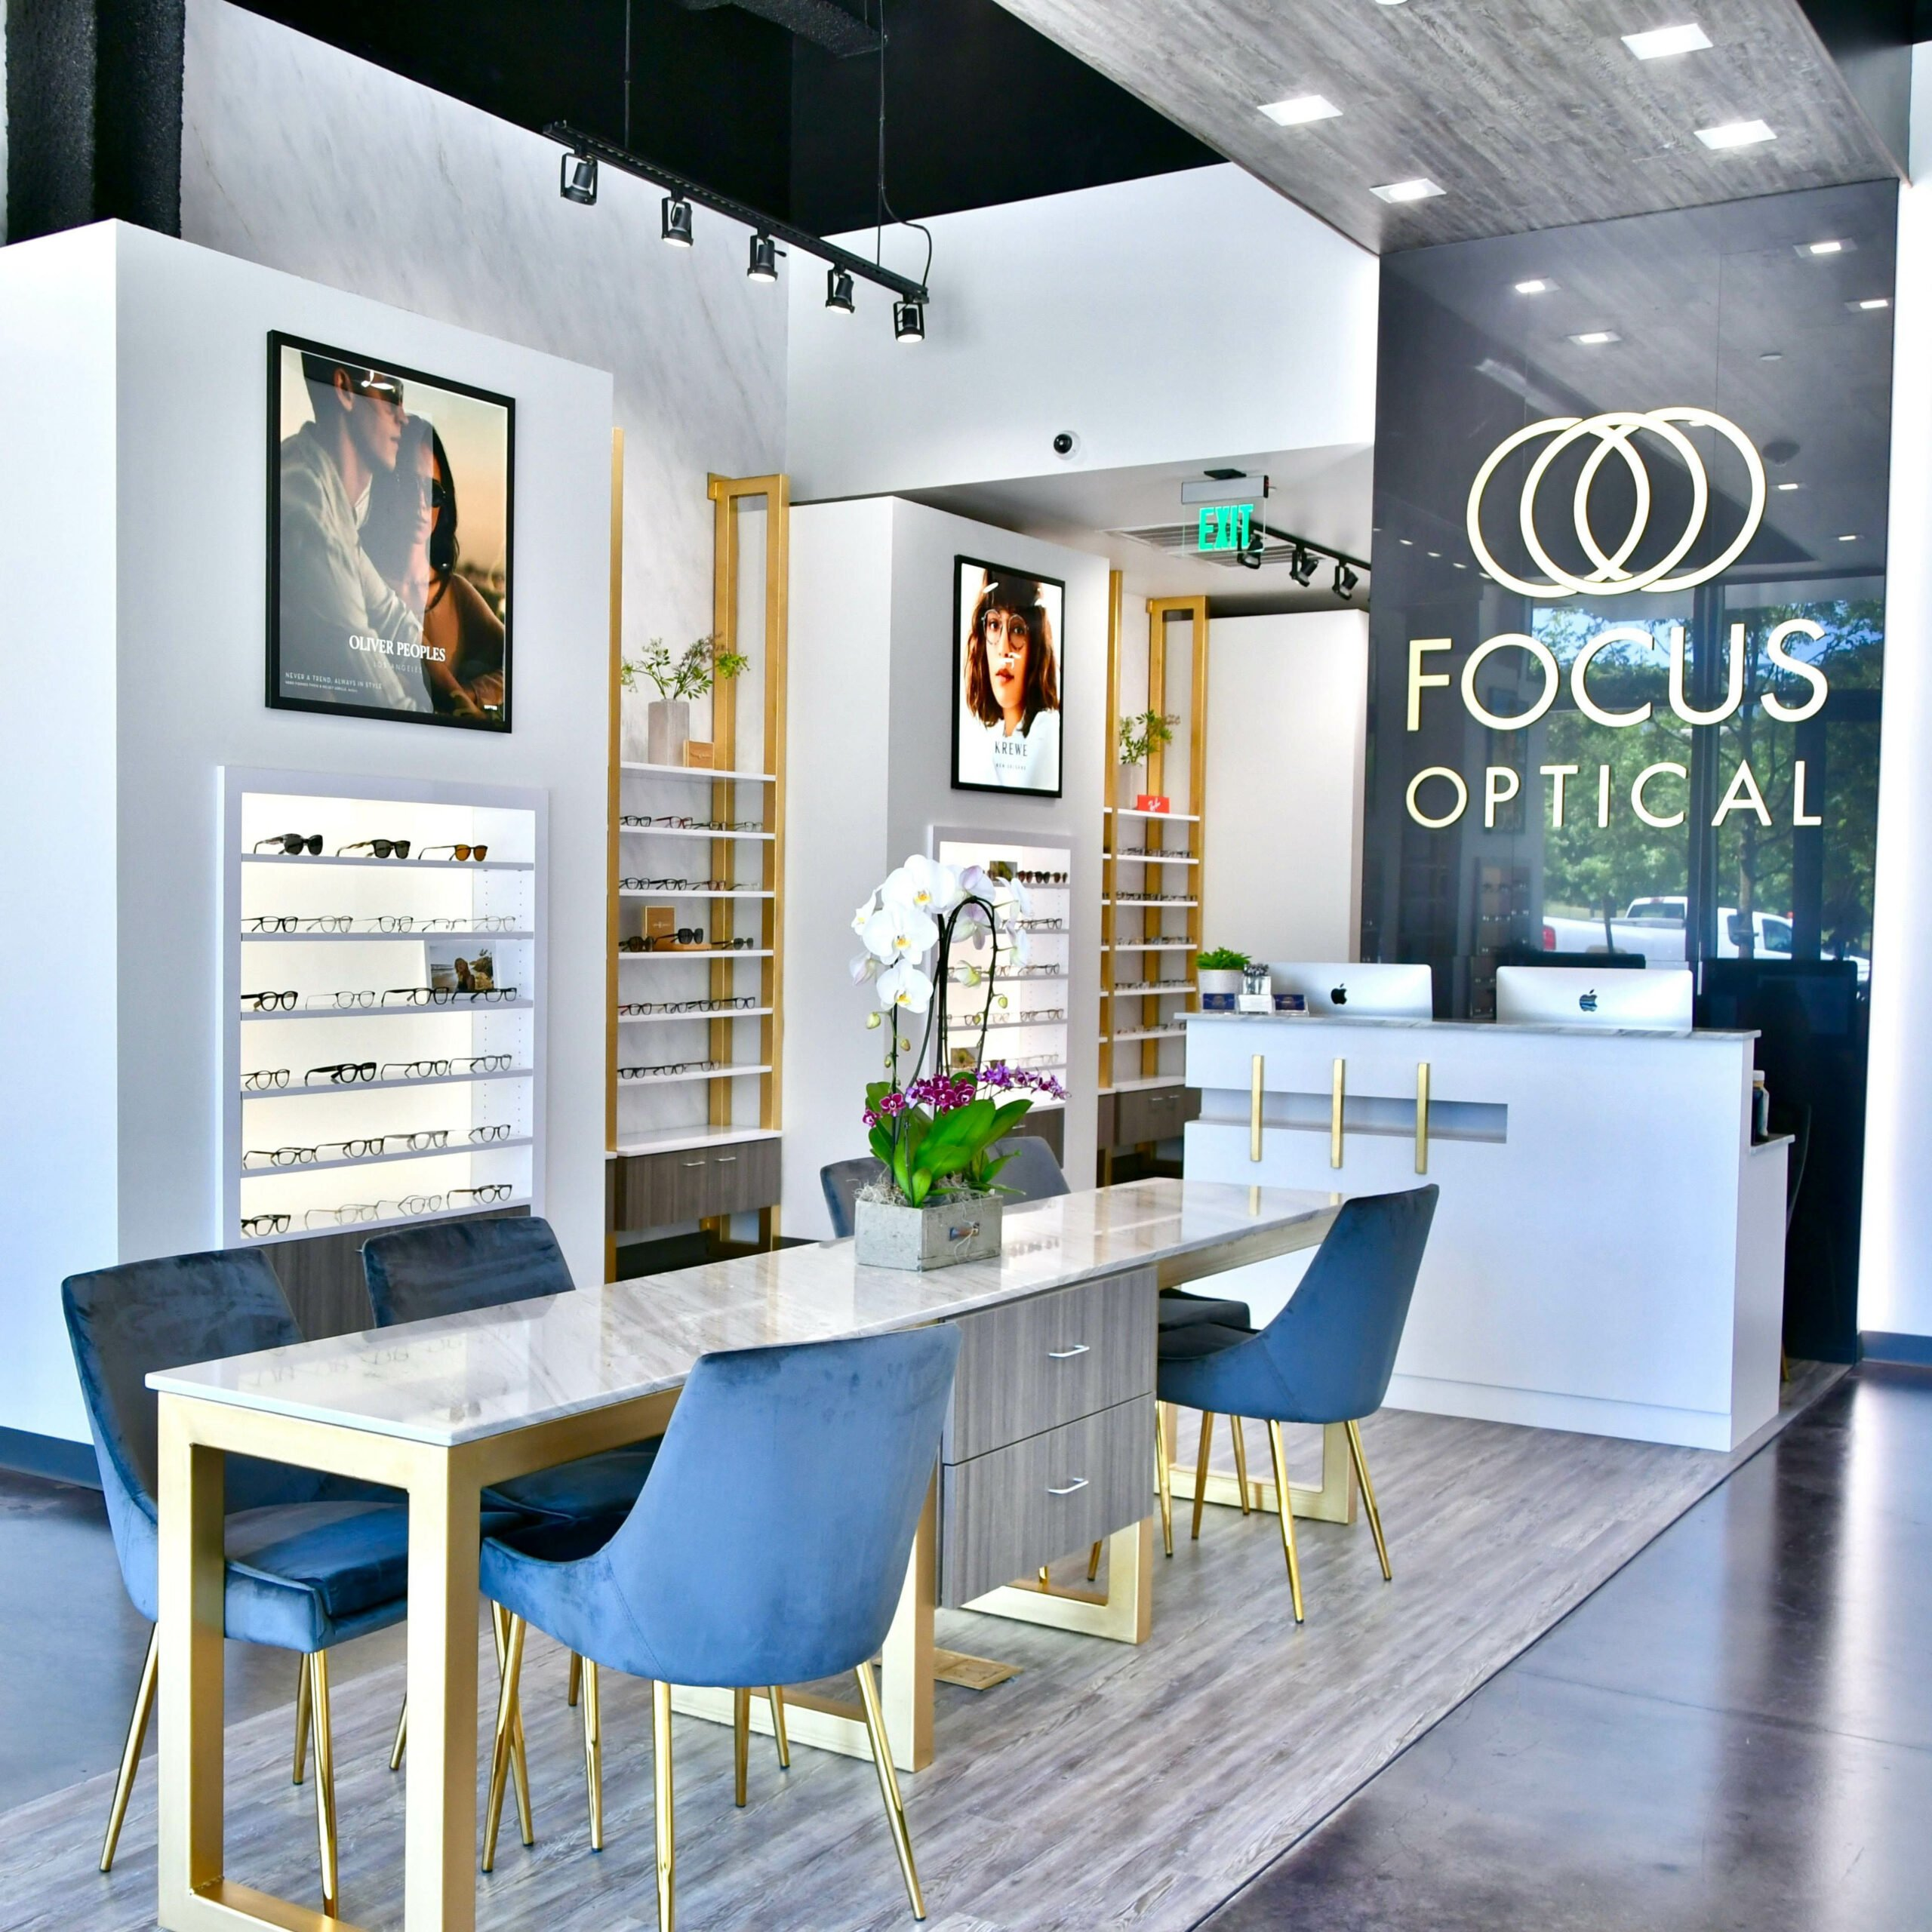 Plaza Retail Rollout begins at North Houston's City Place mixed-use District in Springwoods Village with Opening of Focus Optical